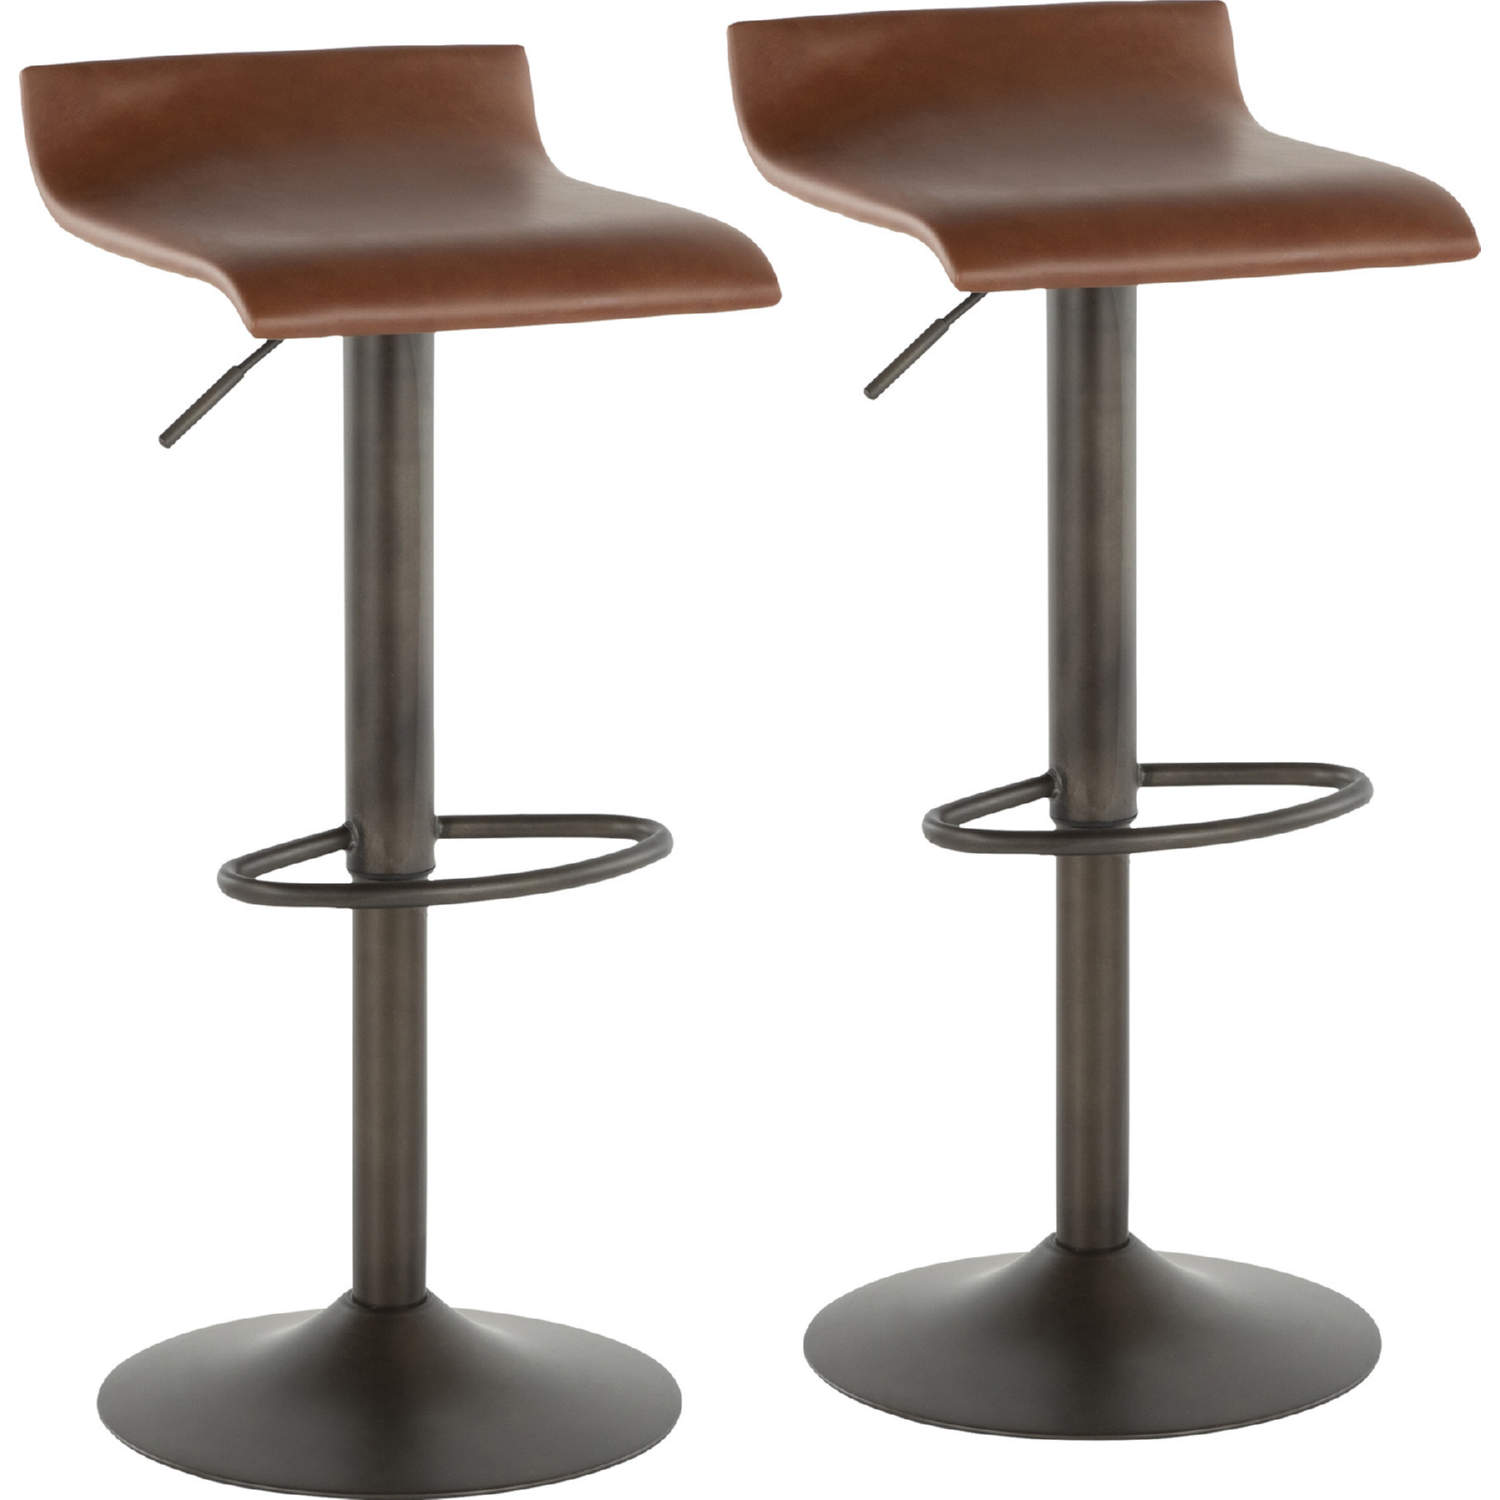 Awesome Ale Bar Stool In Antique Metal Brown Leatherette Set Of 2 By Lumisource Alphanode Cool Chair Designs And Ideas Alphanodeonline